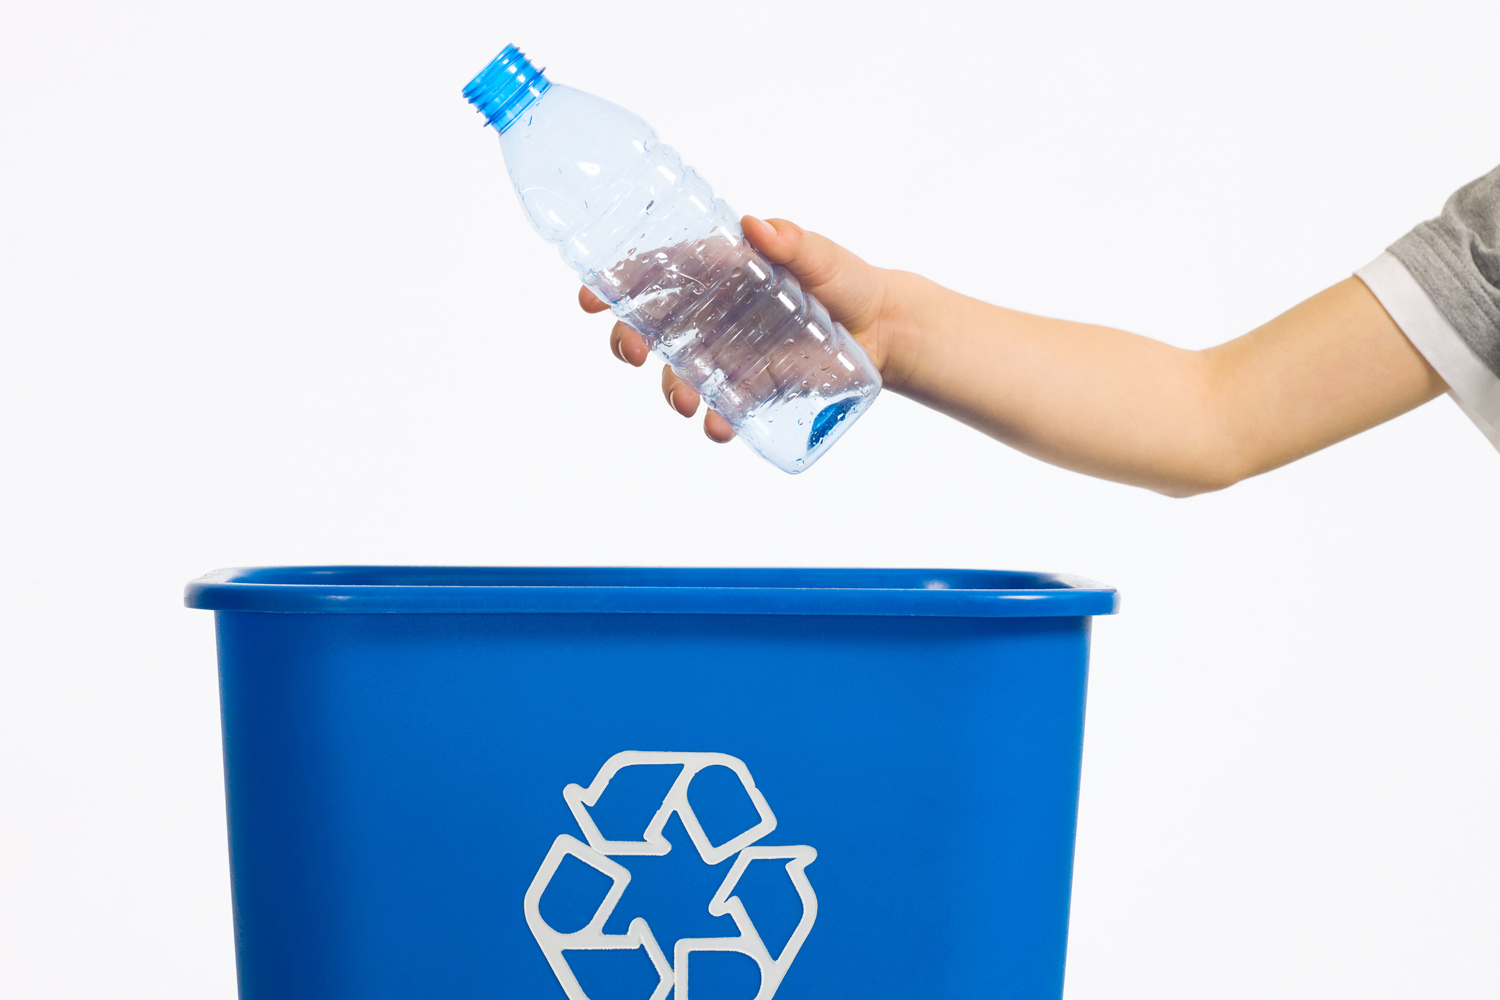 On America Recycles Day take a moment to place your empty water bottle in the nearest recycling bin. Items that get recycled are transformed into new products we can use again.